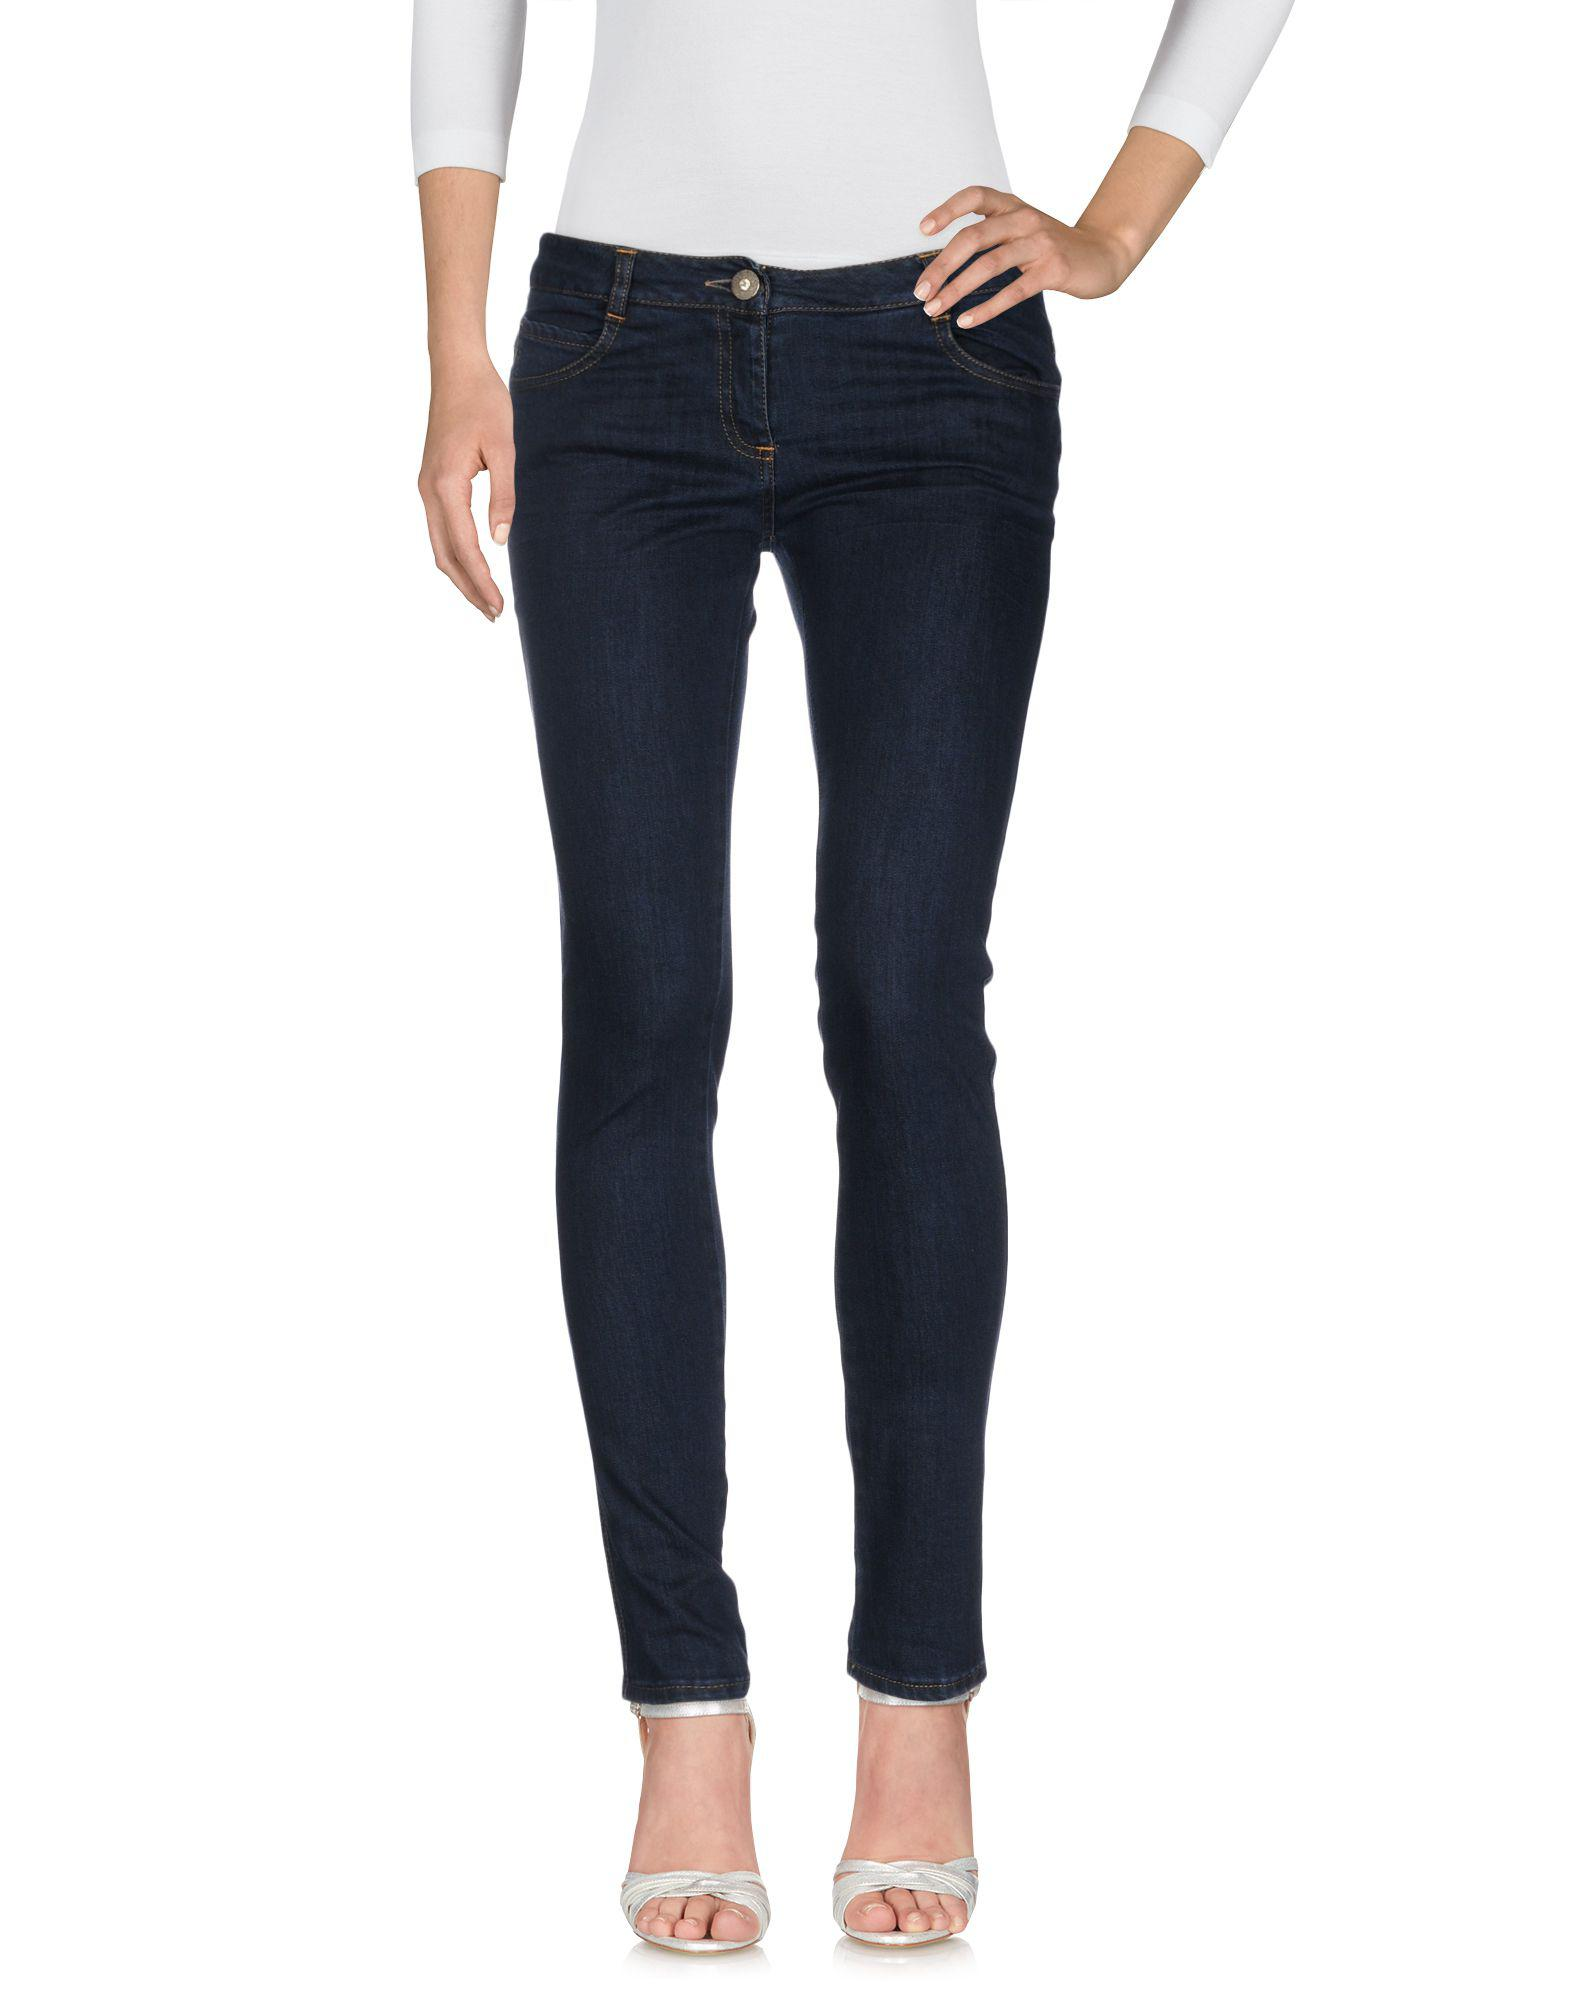 DENIM - Denim trousers Ki6? Who are you? Shop Offer Cheap Online Cheap Sale For Sale Cheap 2018 New Eastbay Online mYyEVeE8z